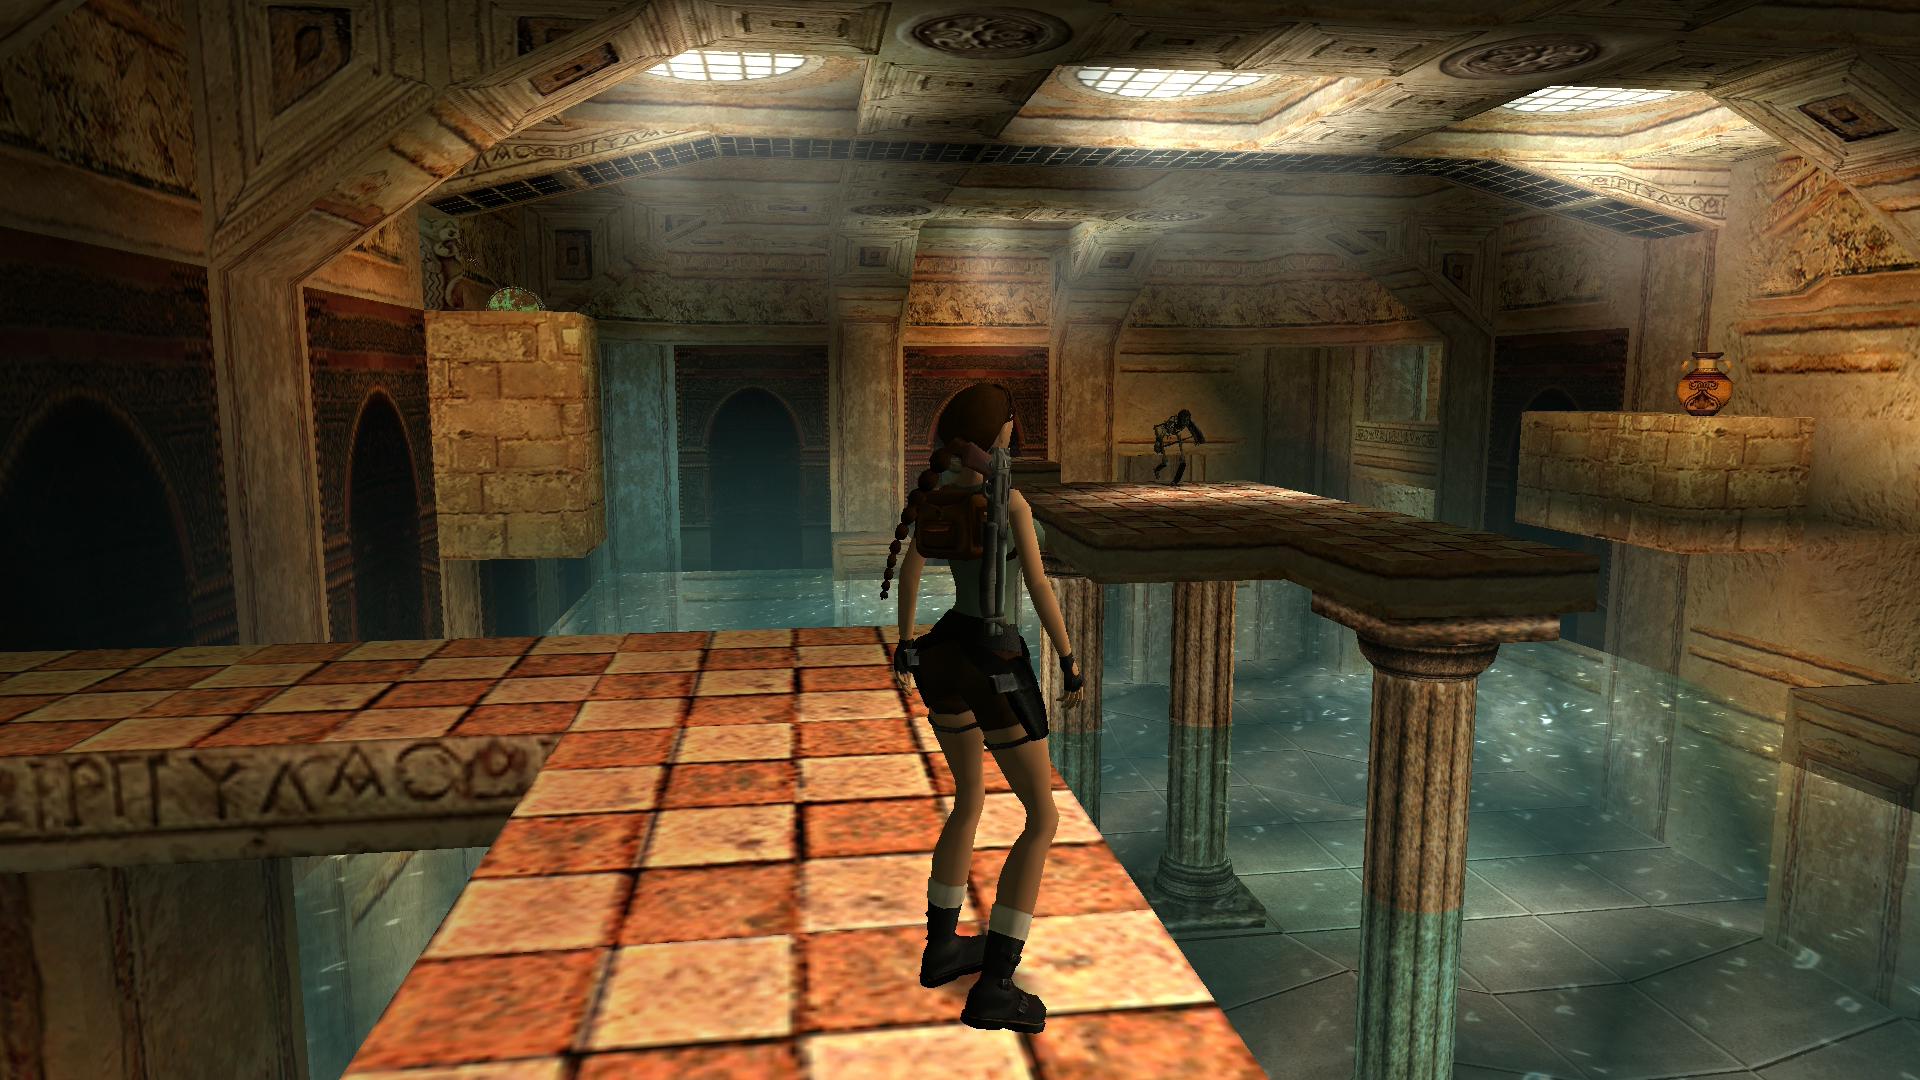 Tomb Raider 4 - Catacombs Remastered